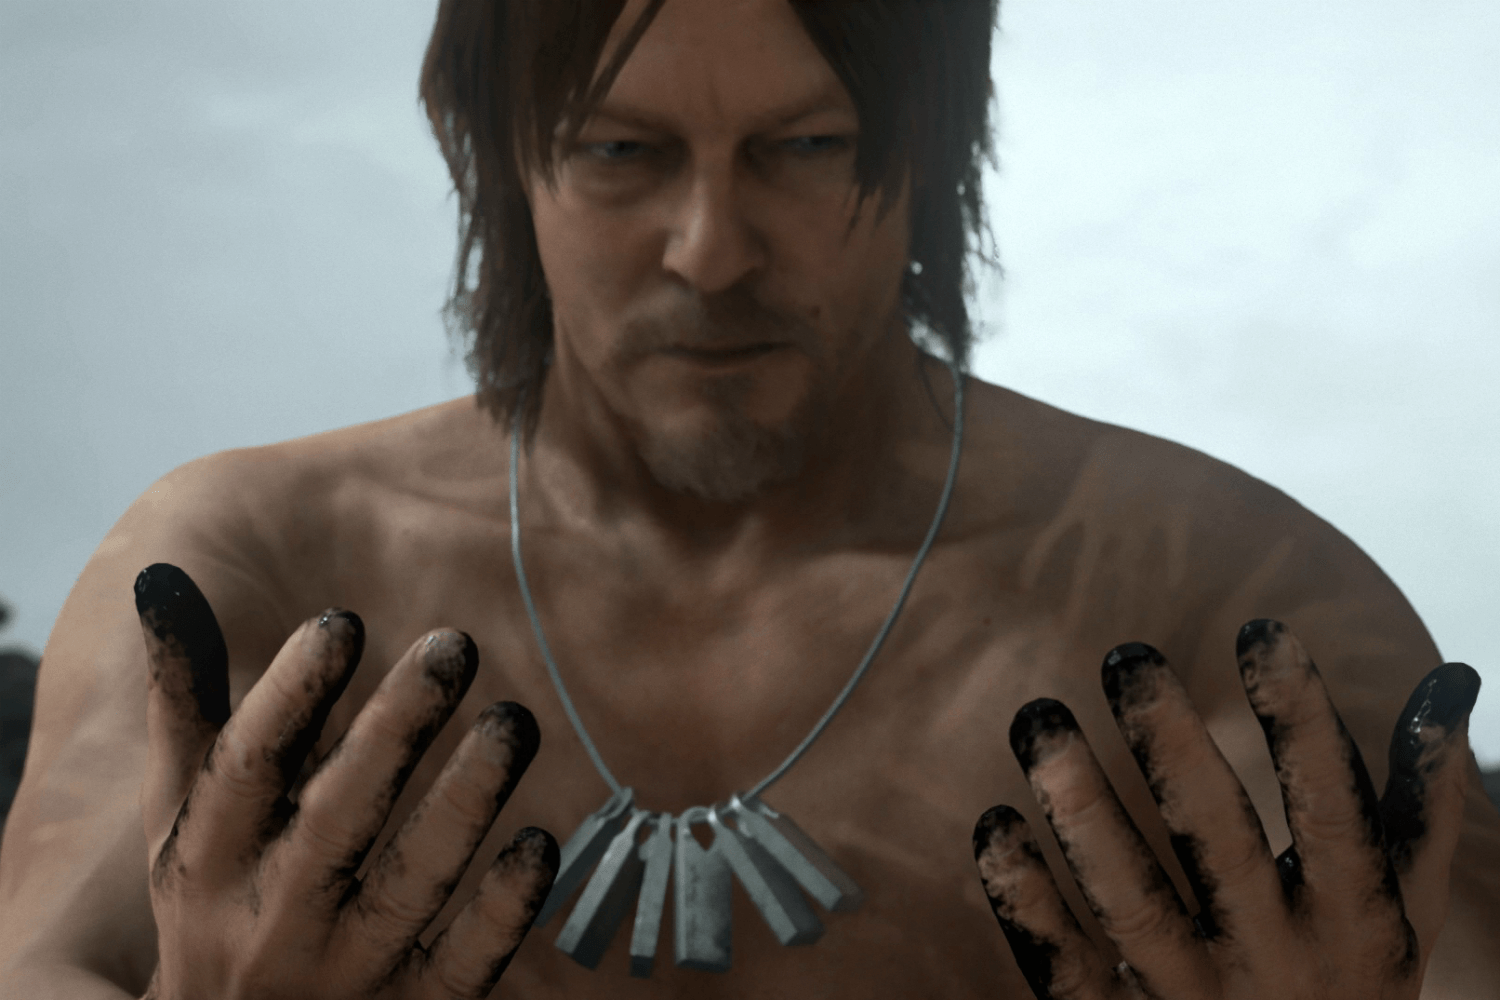 Here's everything we know about 'Death Stranding,' Hideo Kojima's next video game